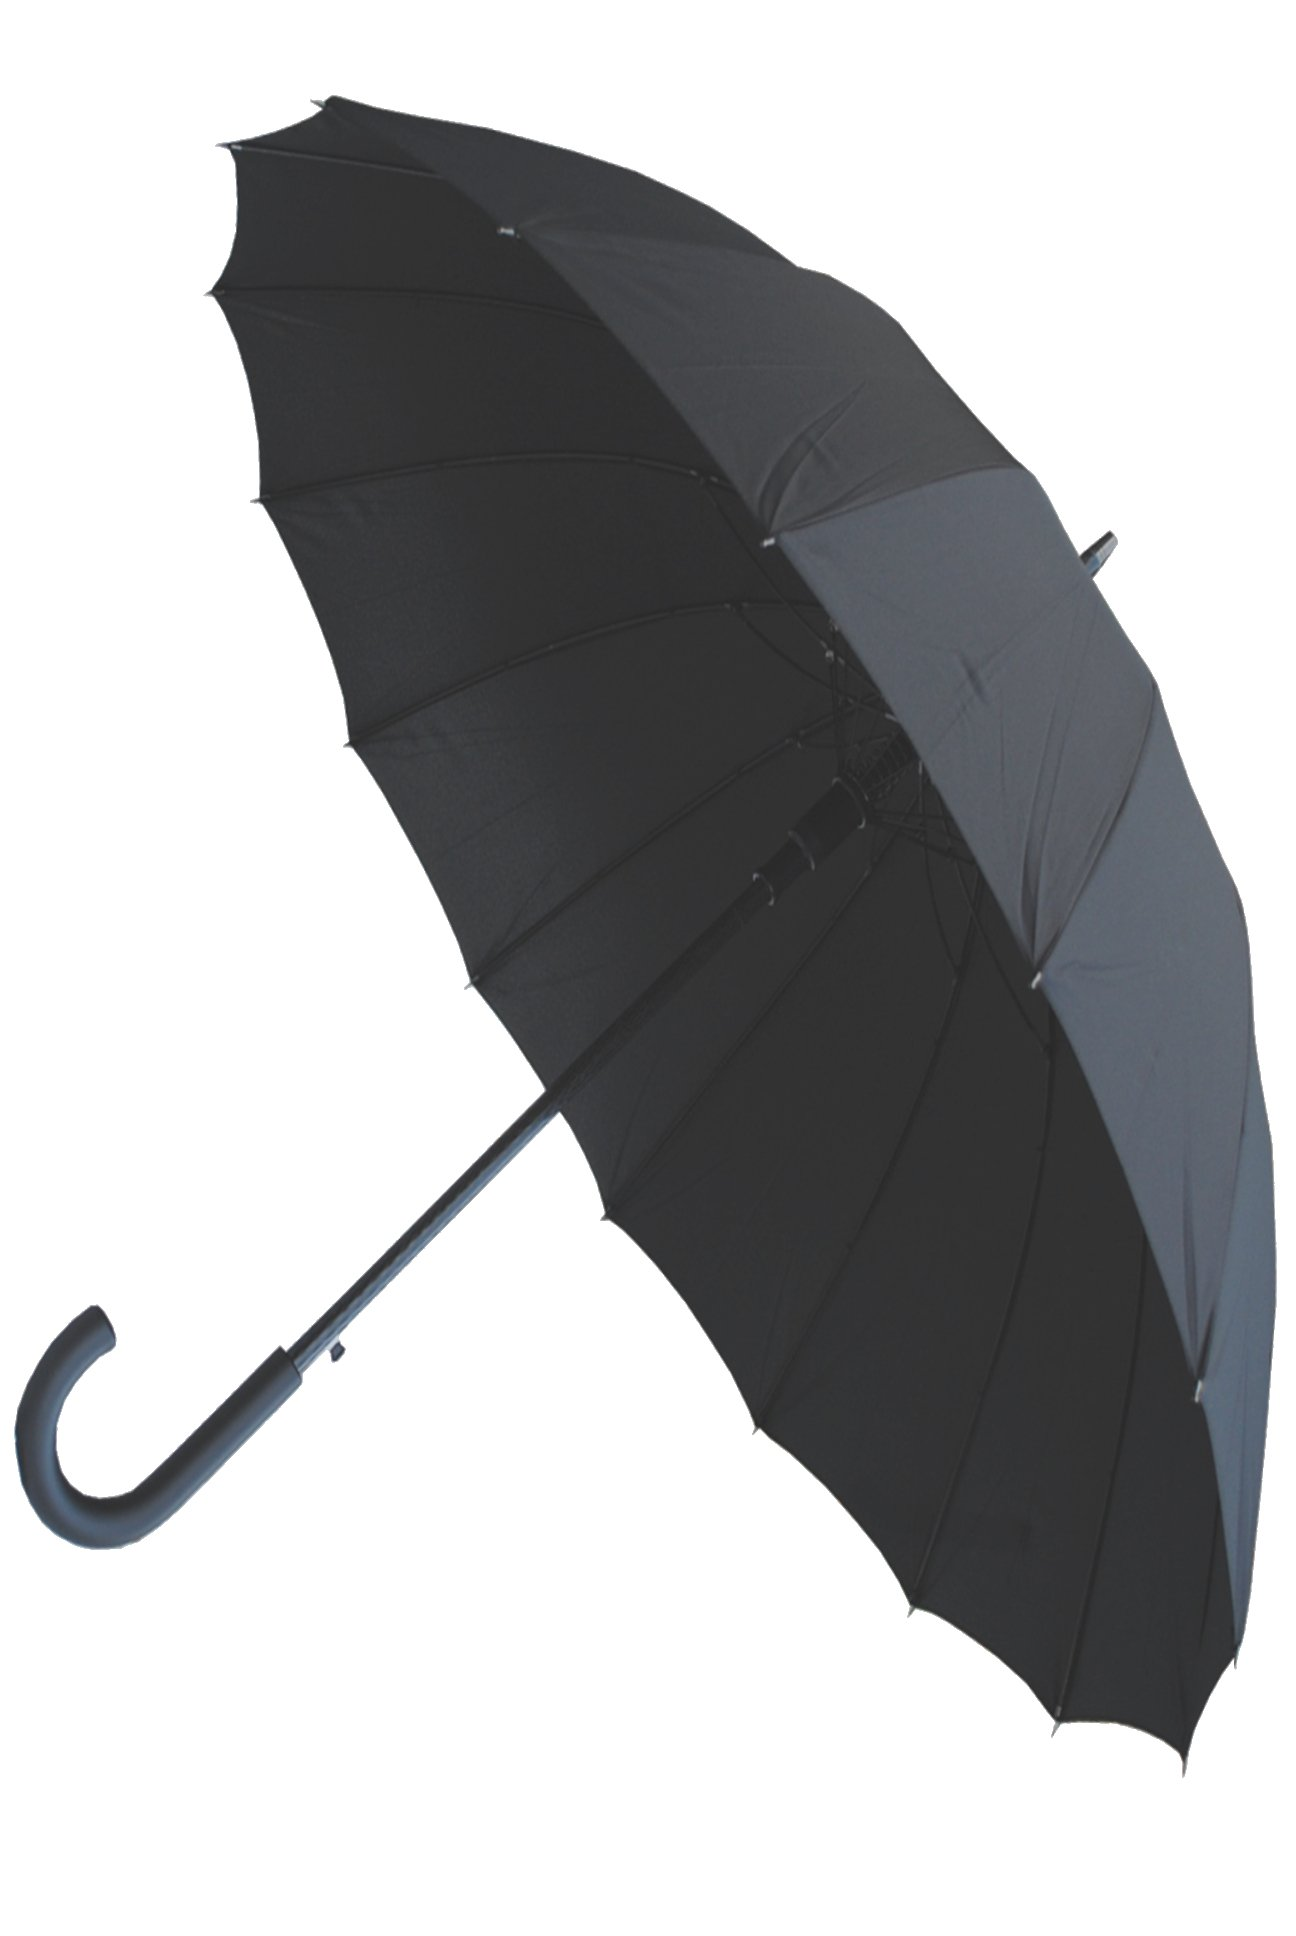 COLLAR AND CUFFS LONDON - Windproof 60MPH - 16 Ribs For SUPER-STRENGTH - EXTRA STRONG - Straight Auto Umbrella Black Canopy